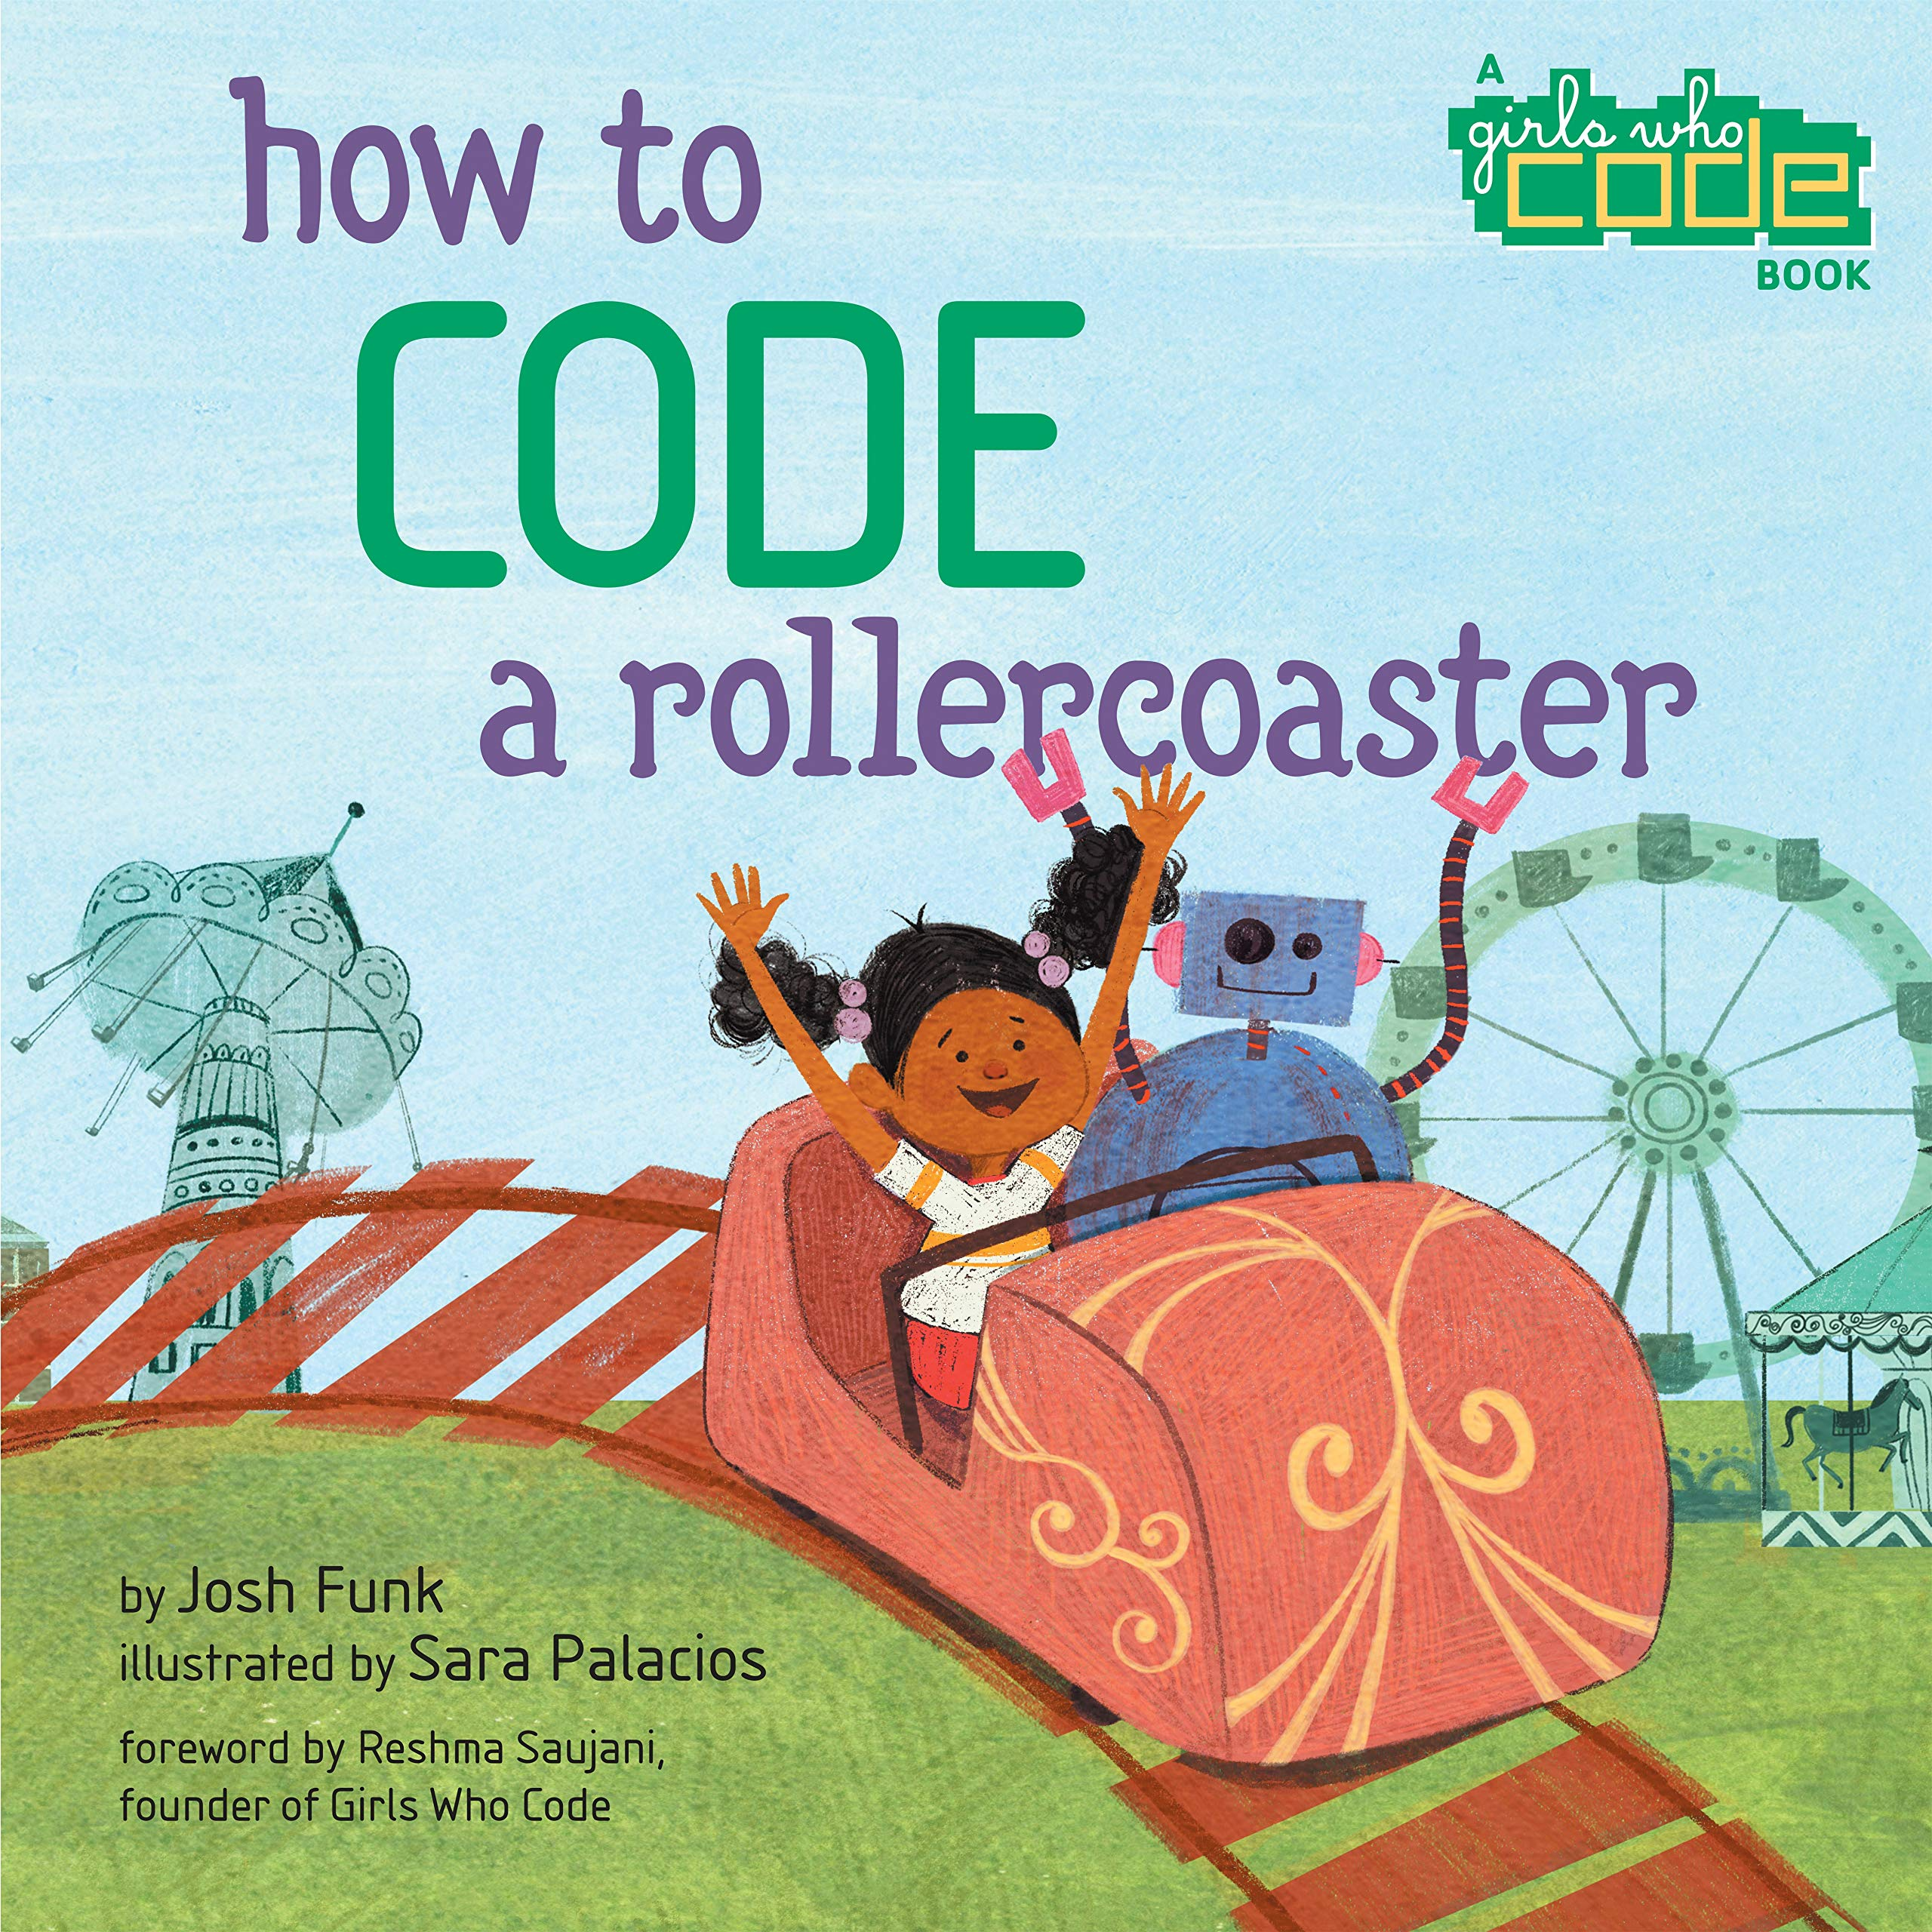 Image result for how to code a roller coaster